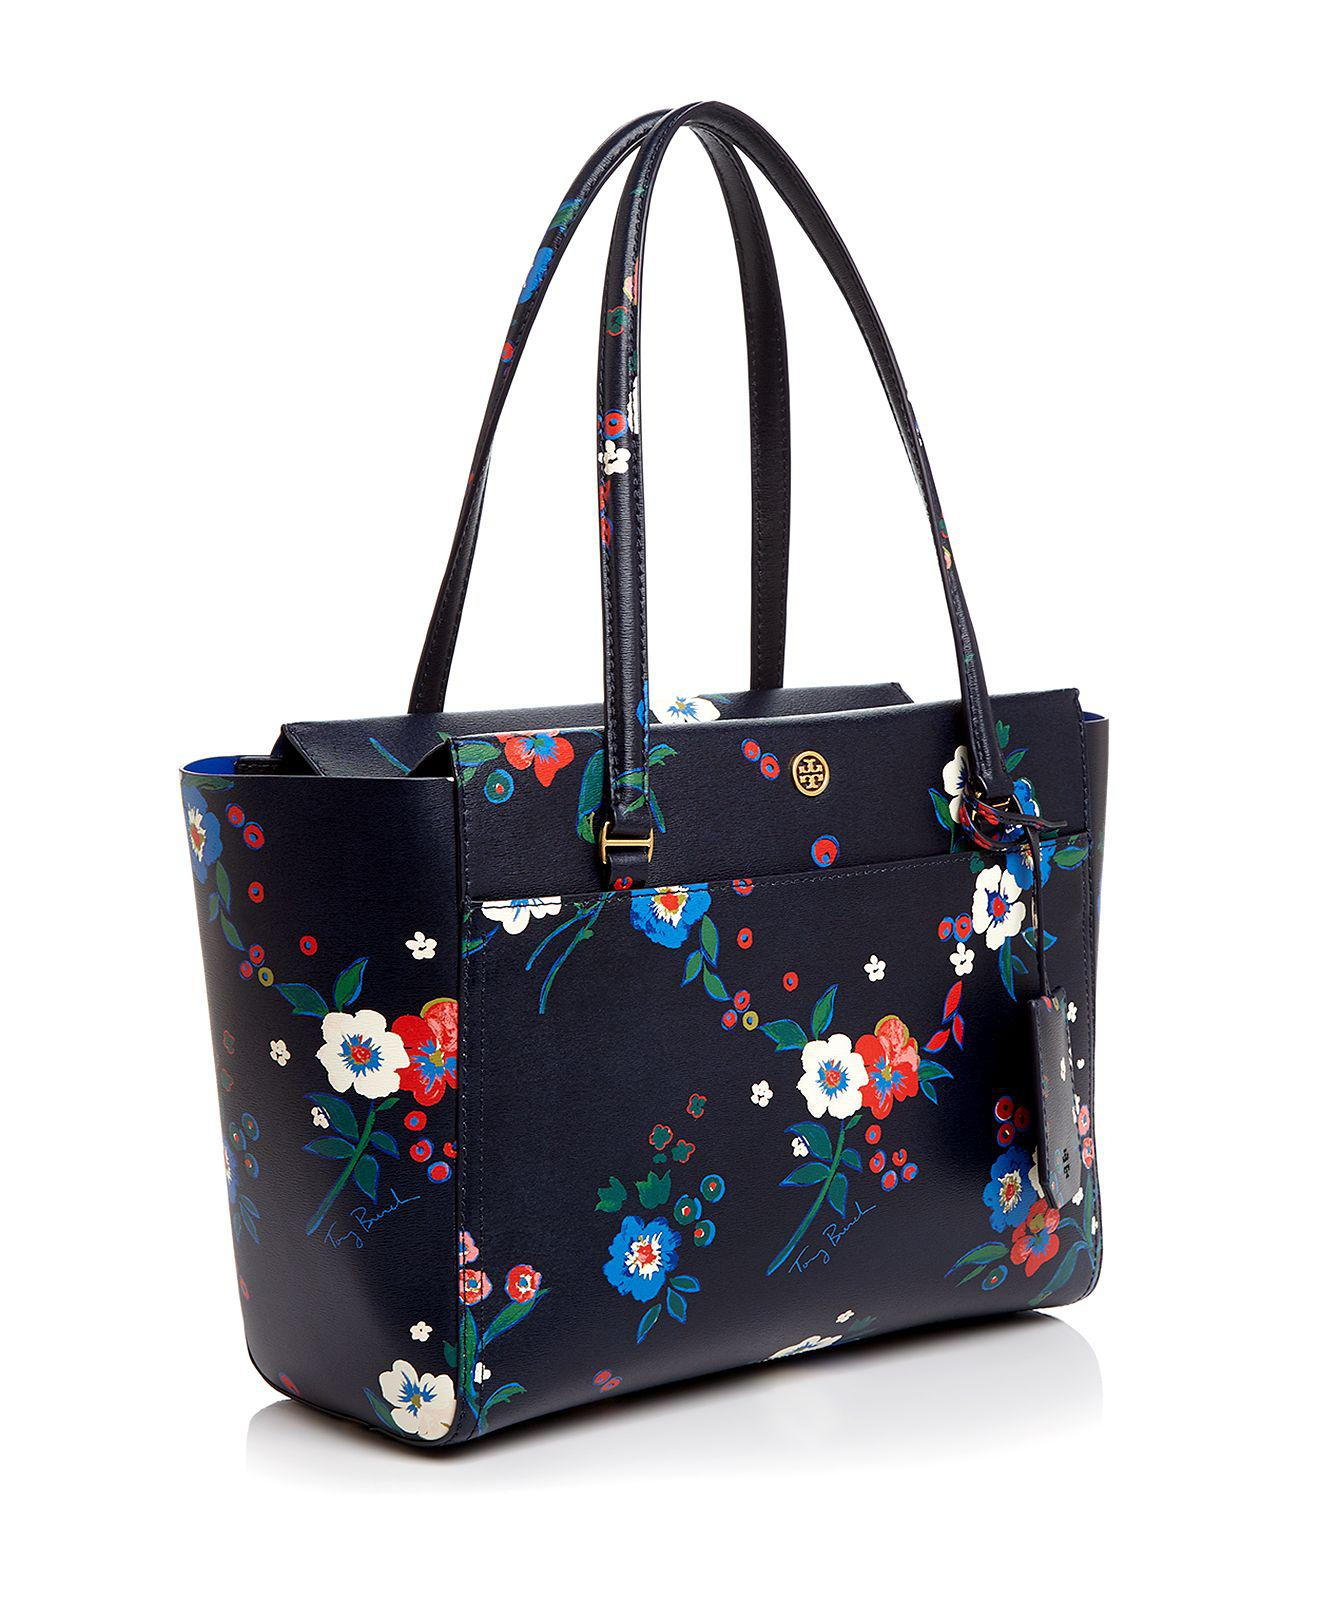 e75409b1bc0 Tory Burch Parker Floral Print Small Tote in Blue - Lyst